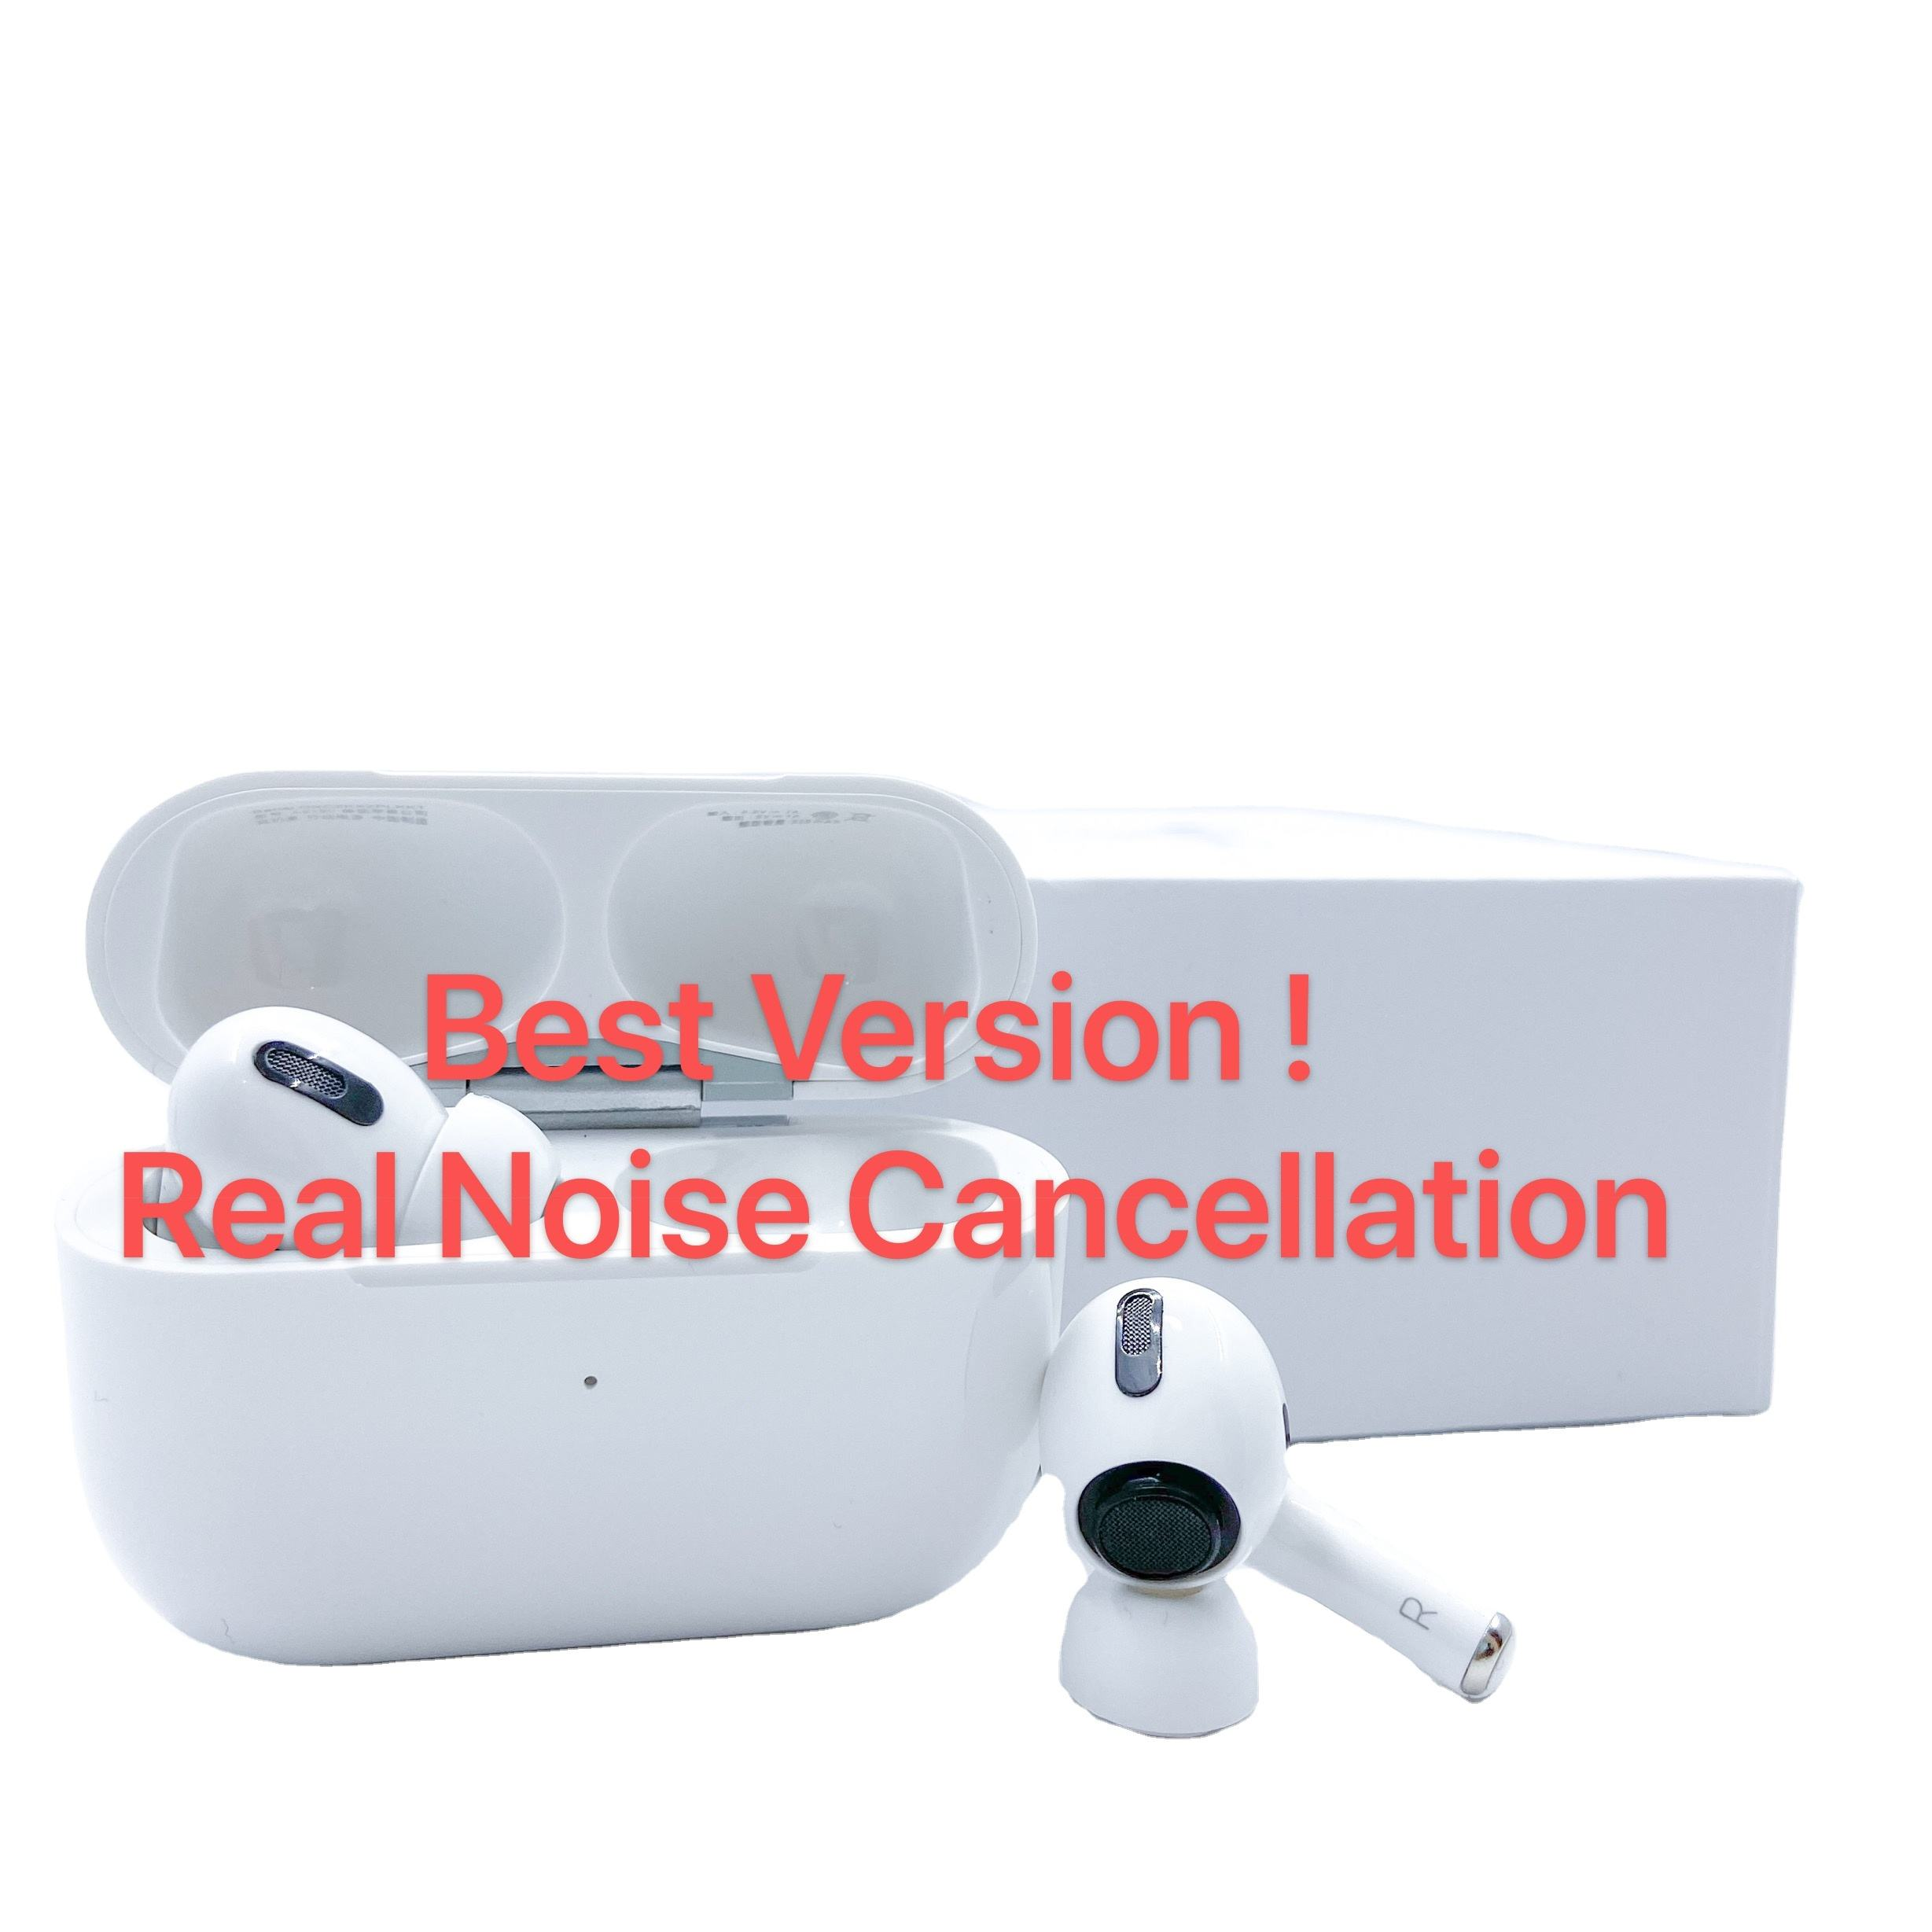 Best ANC Spatial Audio Apple AirPods Pro TWS Wireless Earphones Headphones For iPhone AirPods 2 With Setting Serial Number